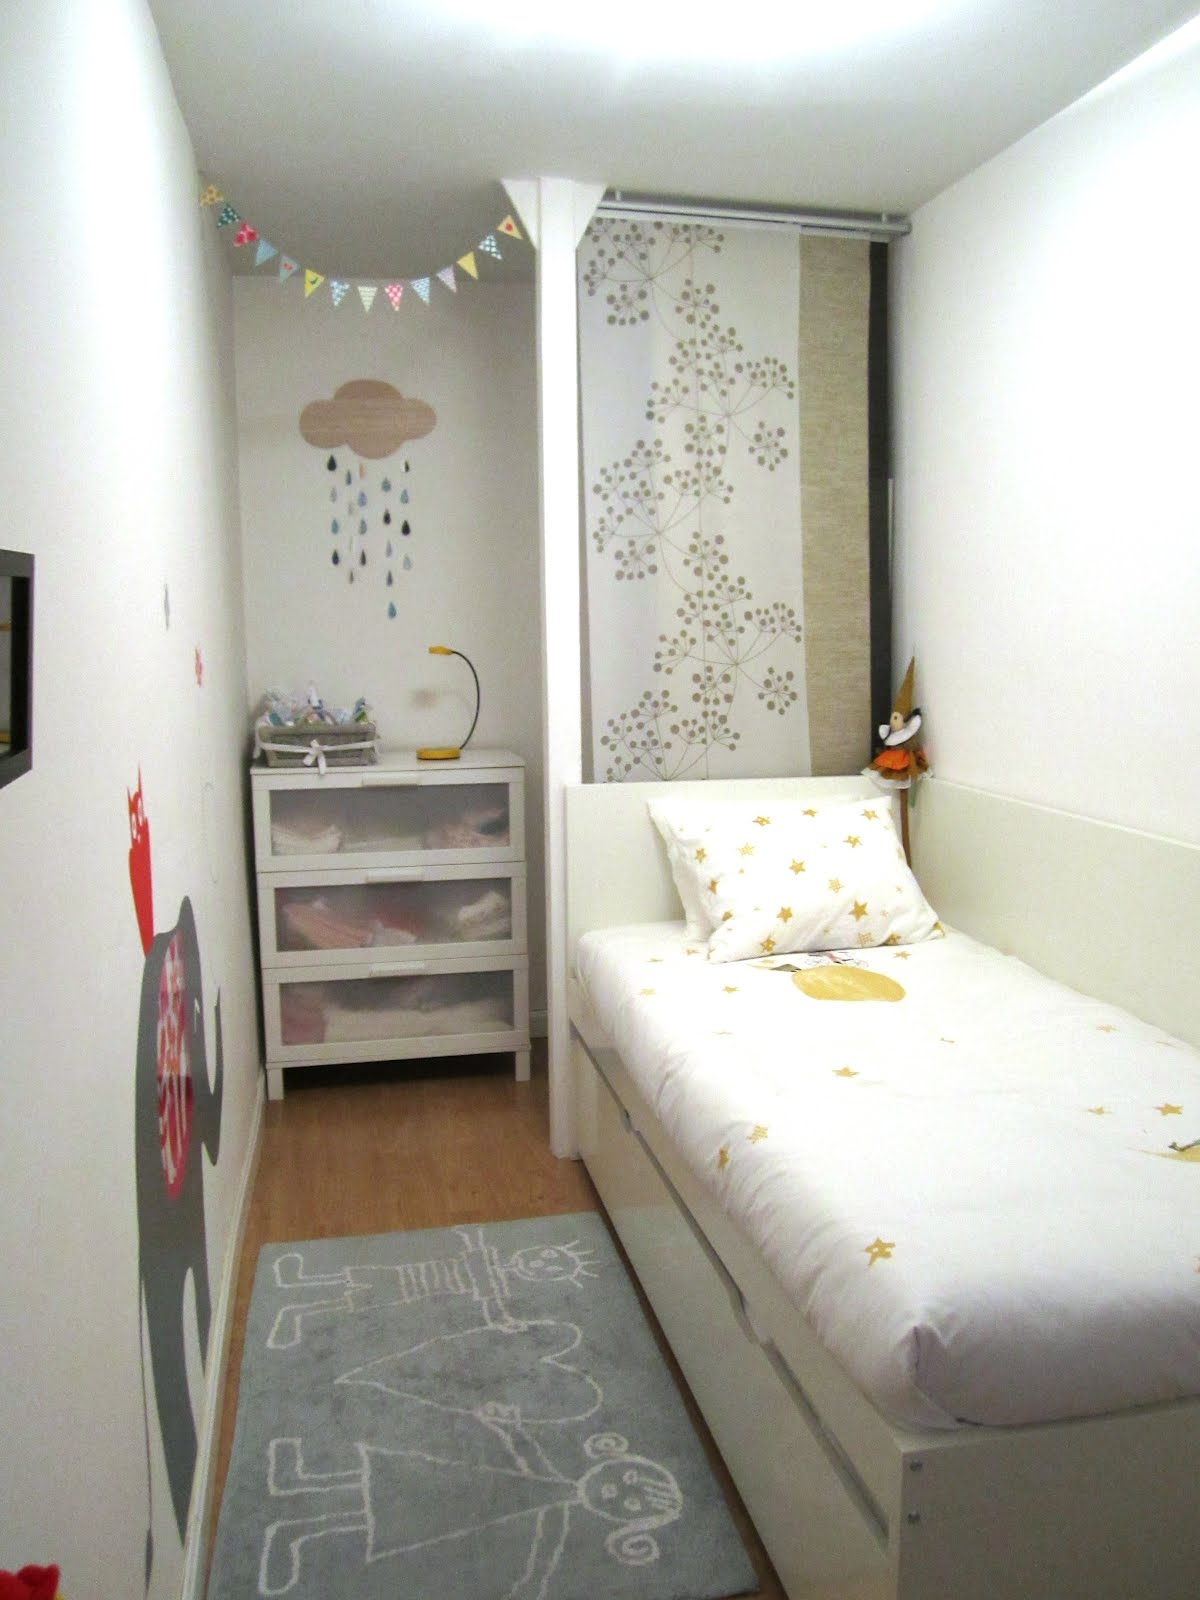 Naifandtastic decoraci n craft hecho a mano for Small single bedroom decorating ideas